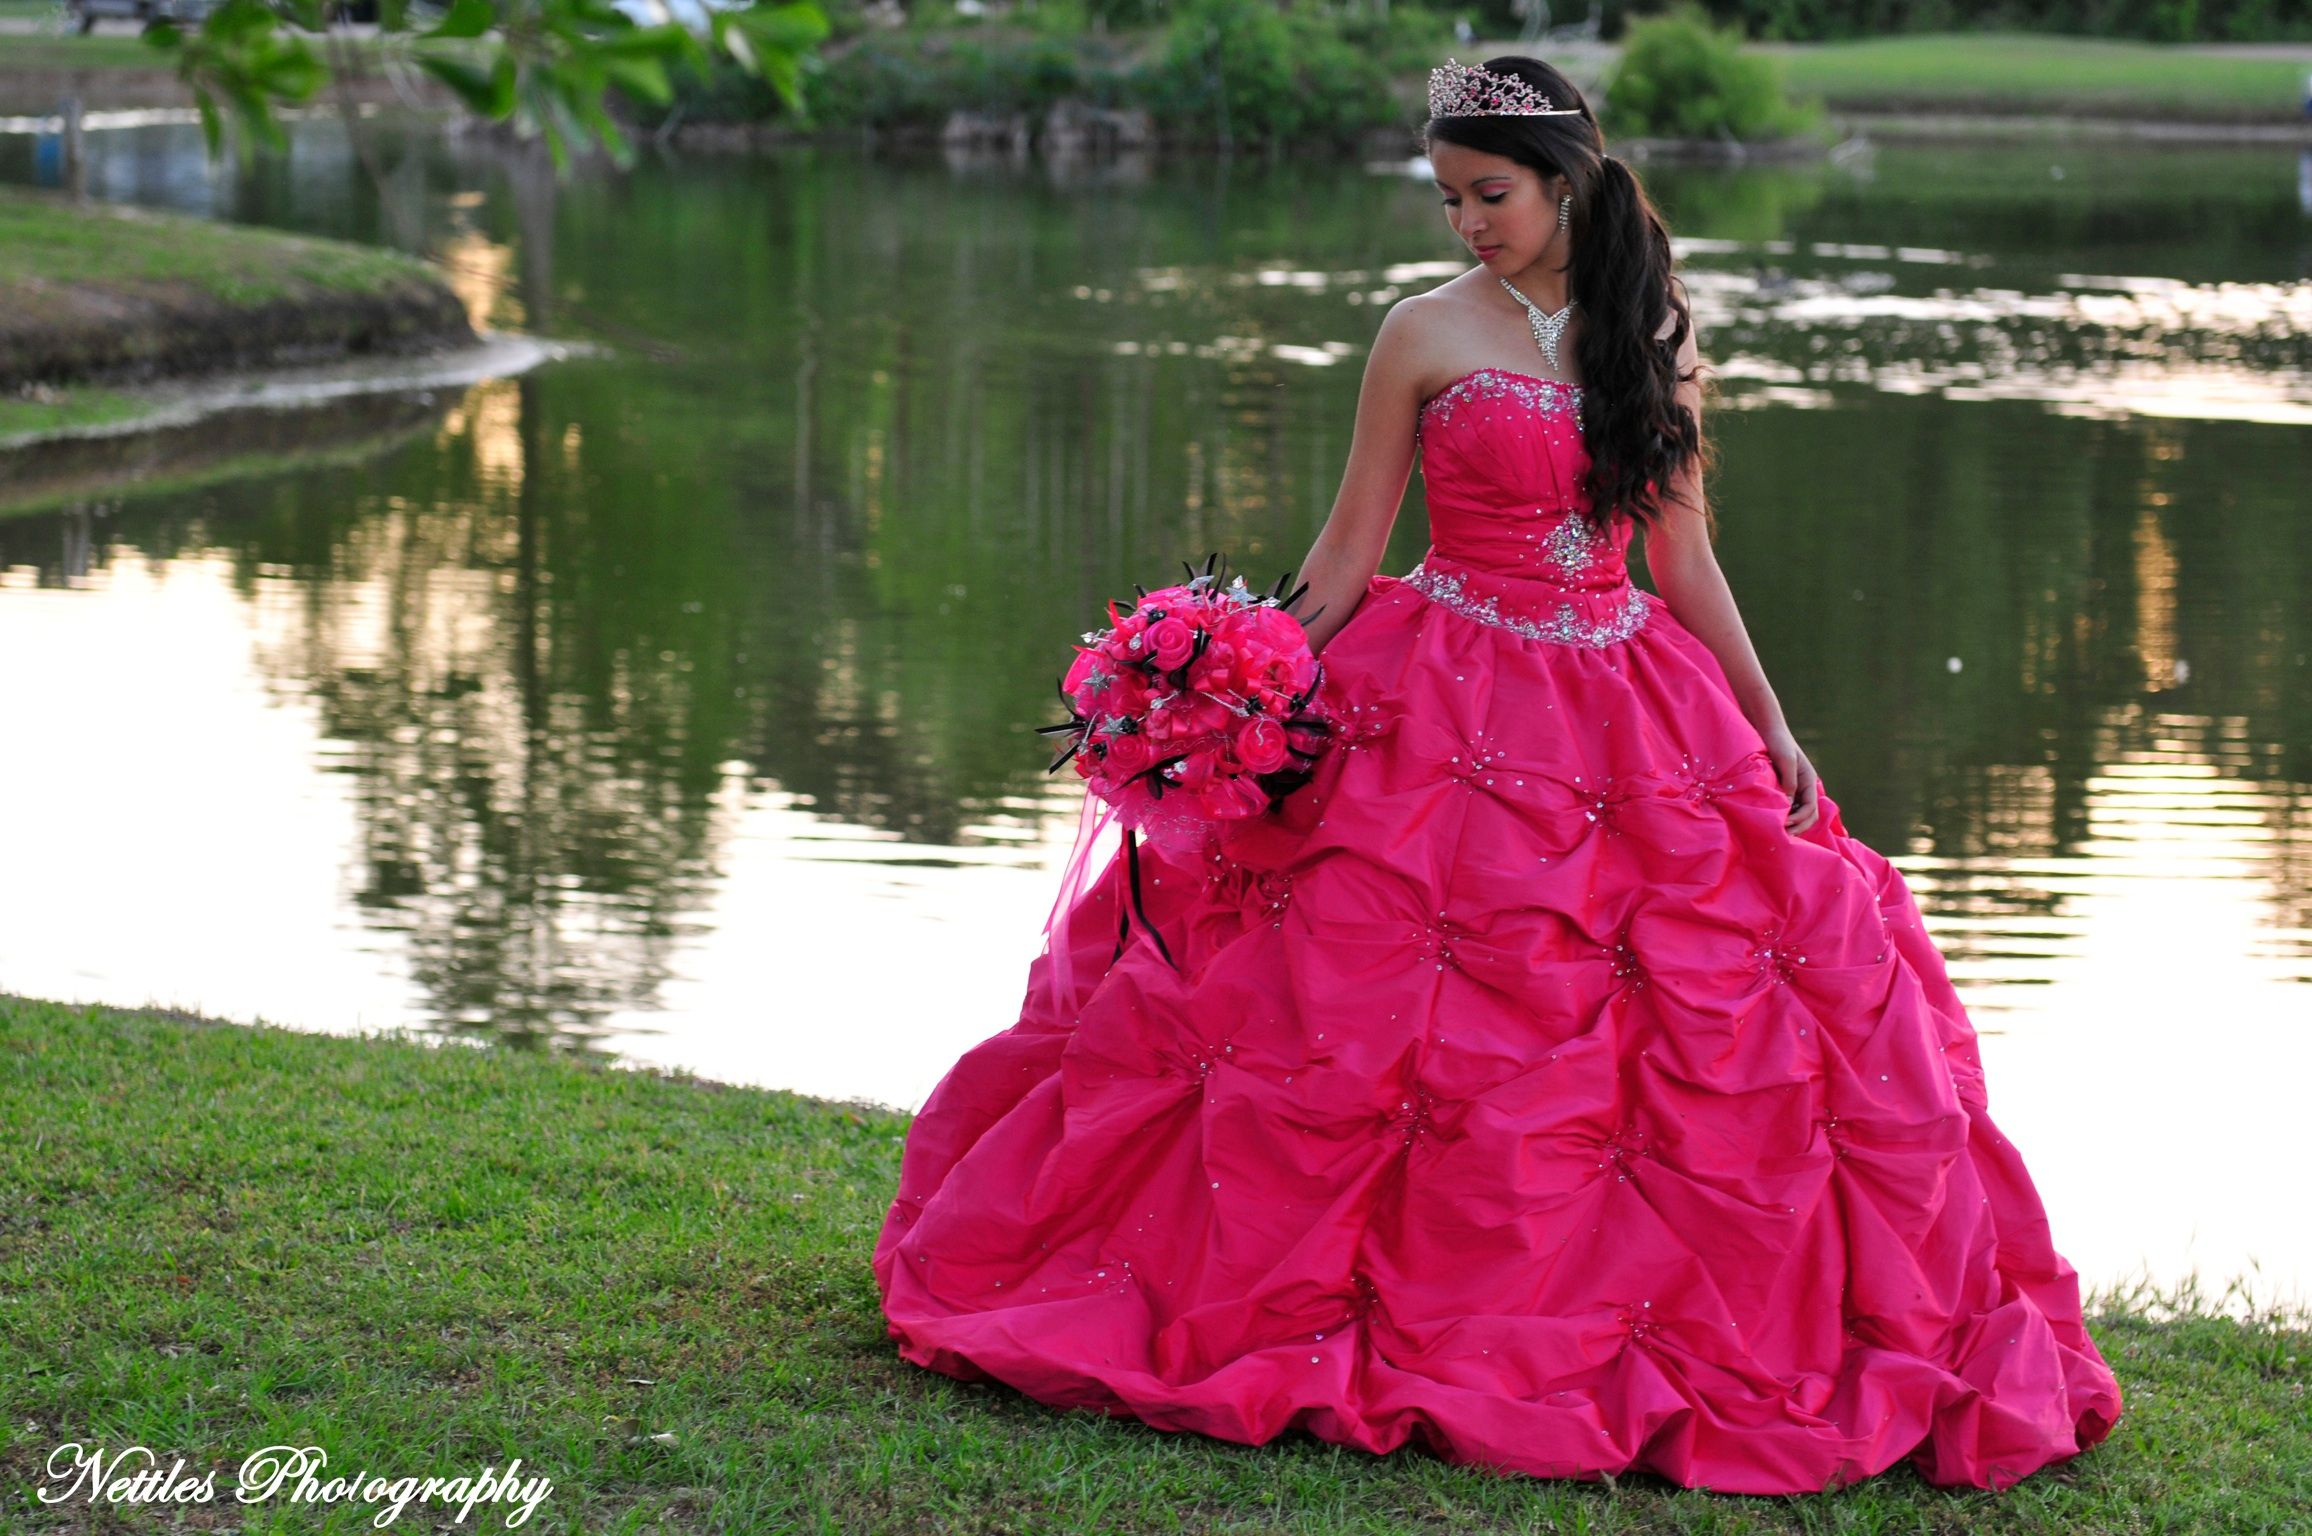 15 Anos Dresses Pink: Quinceanera. Love The Pose And The Dress!